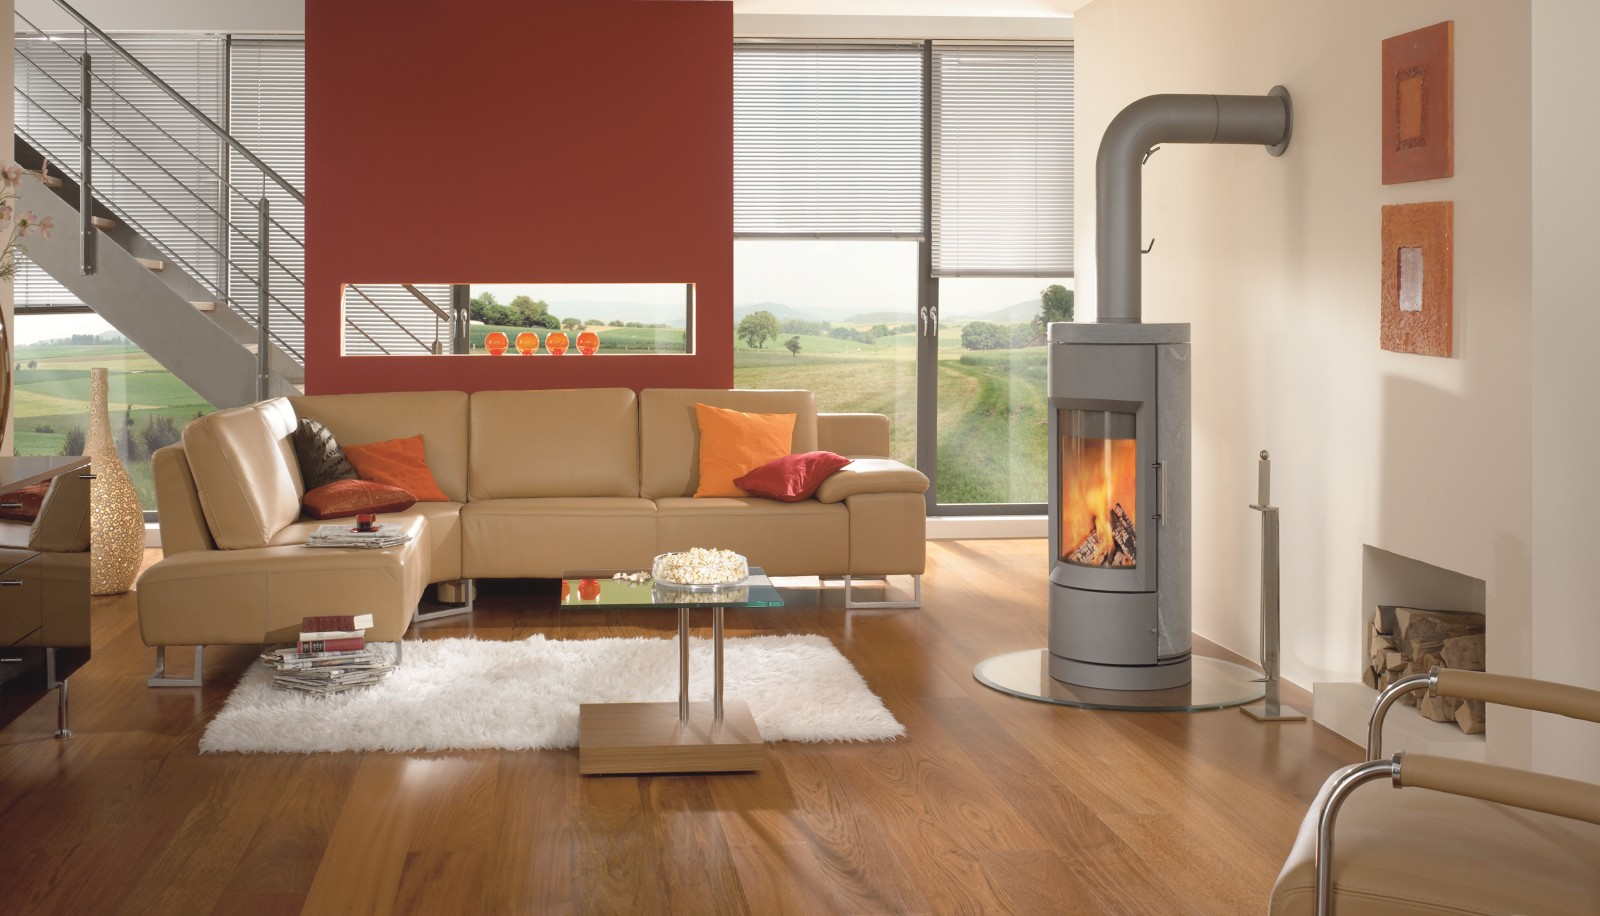 bari woodstove - Wood Stove Design Ideas